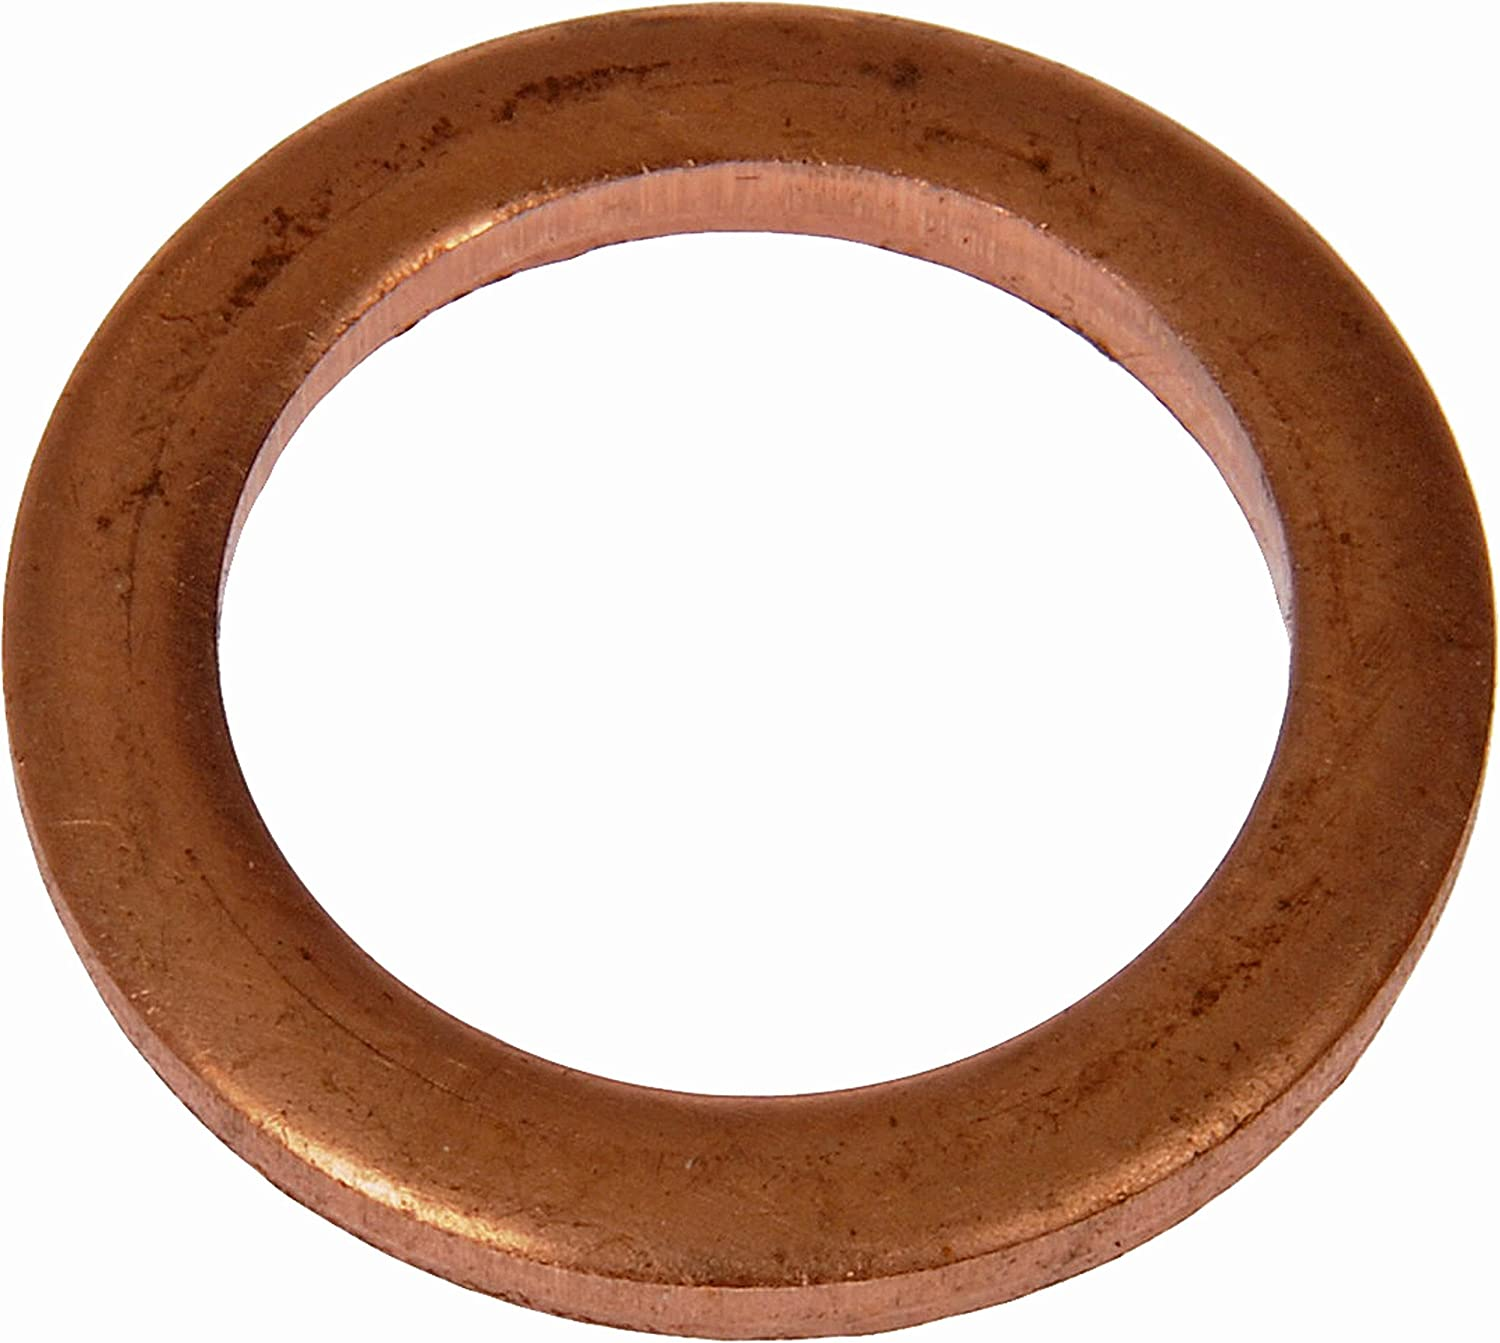 Copper Crush Washer//Gasket for Mag Plug MP121522 Magnetic Oil Drain Plug and M12 x 1.5 BMW Oil Drain Plugs Pack of 10